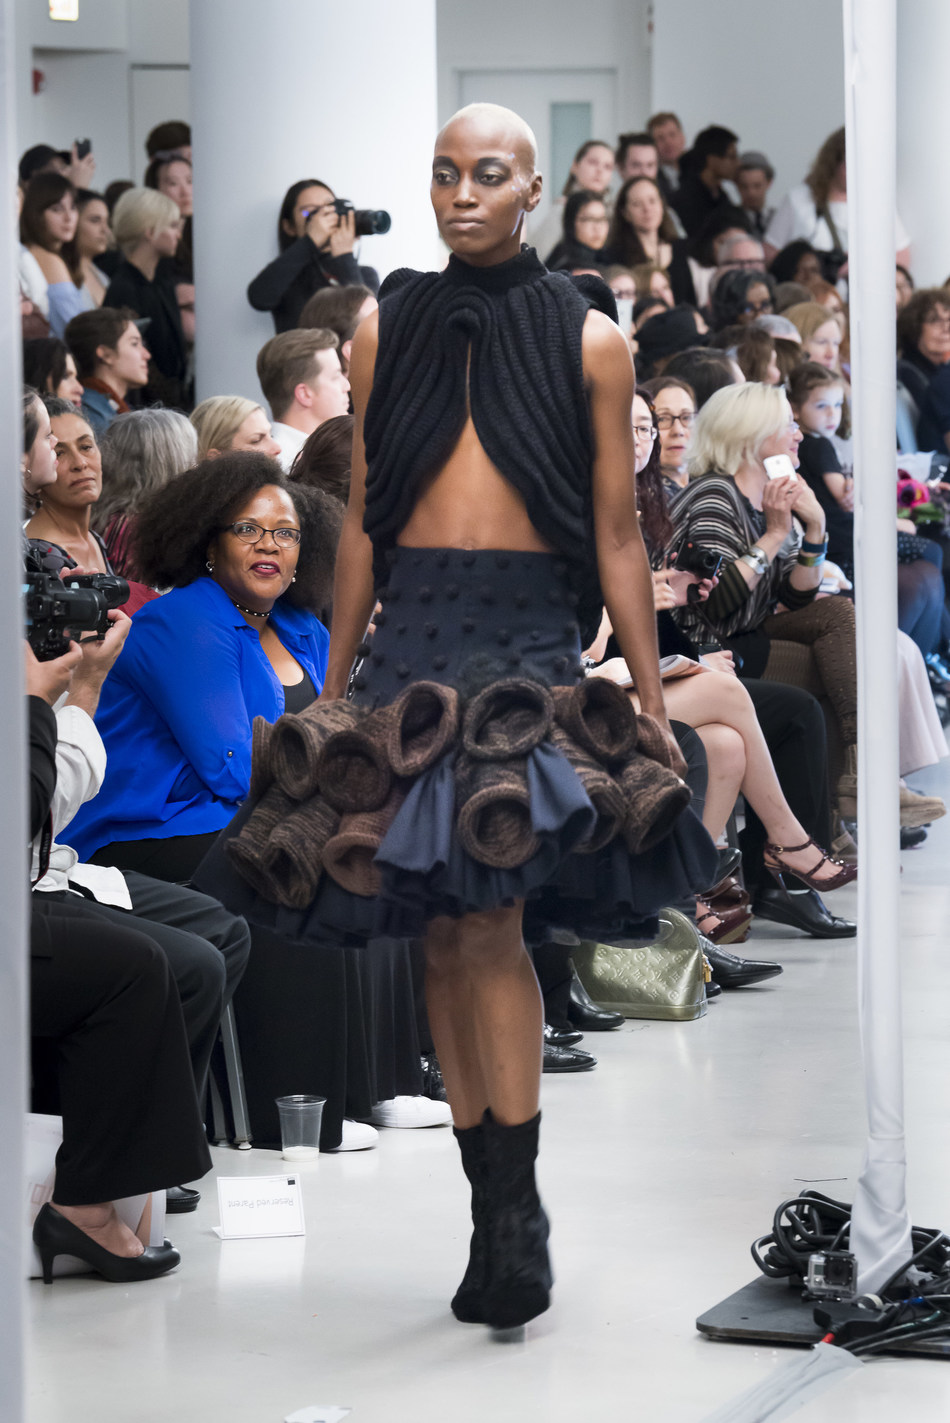 More than 500 people showed up to the 83rd School of the Art Institute of Chicago Fashion Show on Friday, May 5th at VenueSix10 at the Spertus Institute to see the imaginative collections from 20 emerging designers, including this work by Michel'Le Forrest. (Photo by Jim Prinz for SAIC)